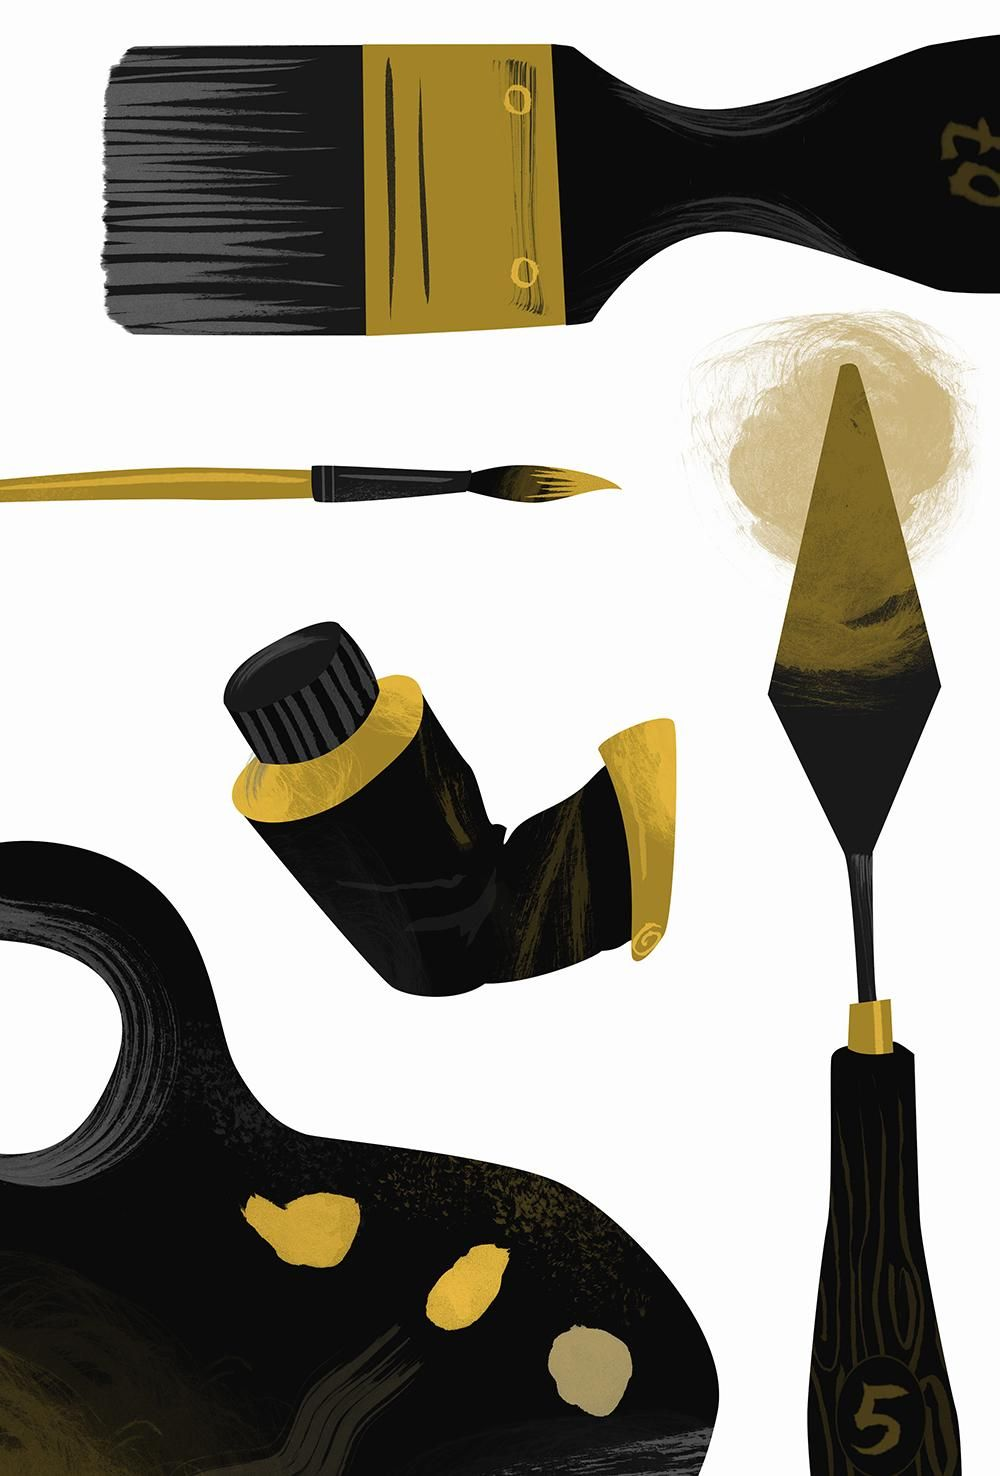 Painting tools - image 4 - student project